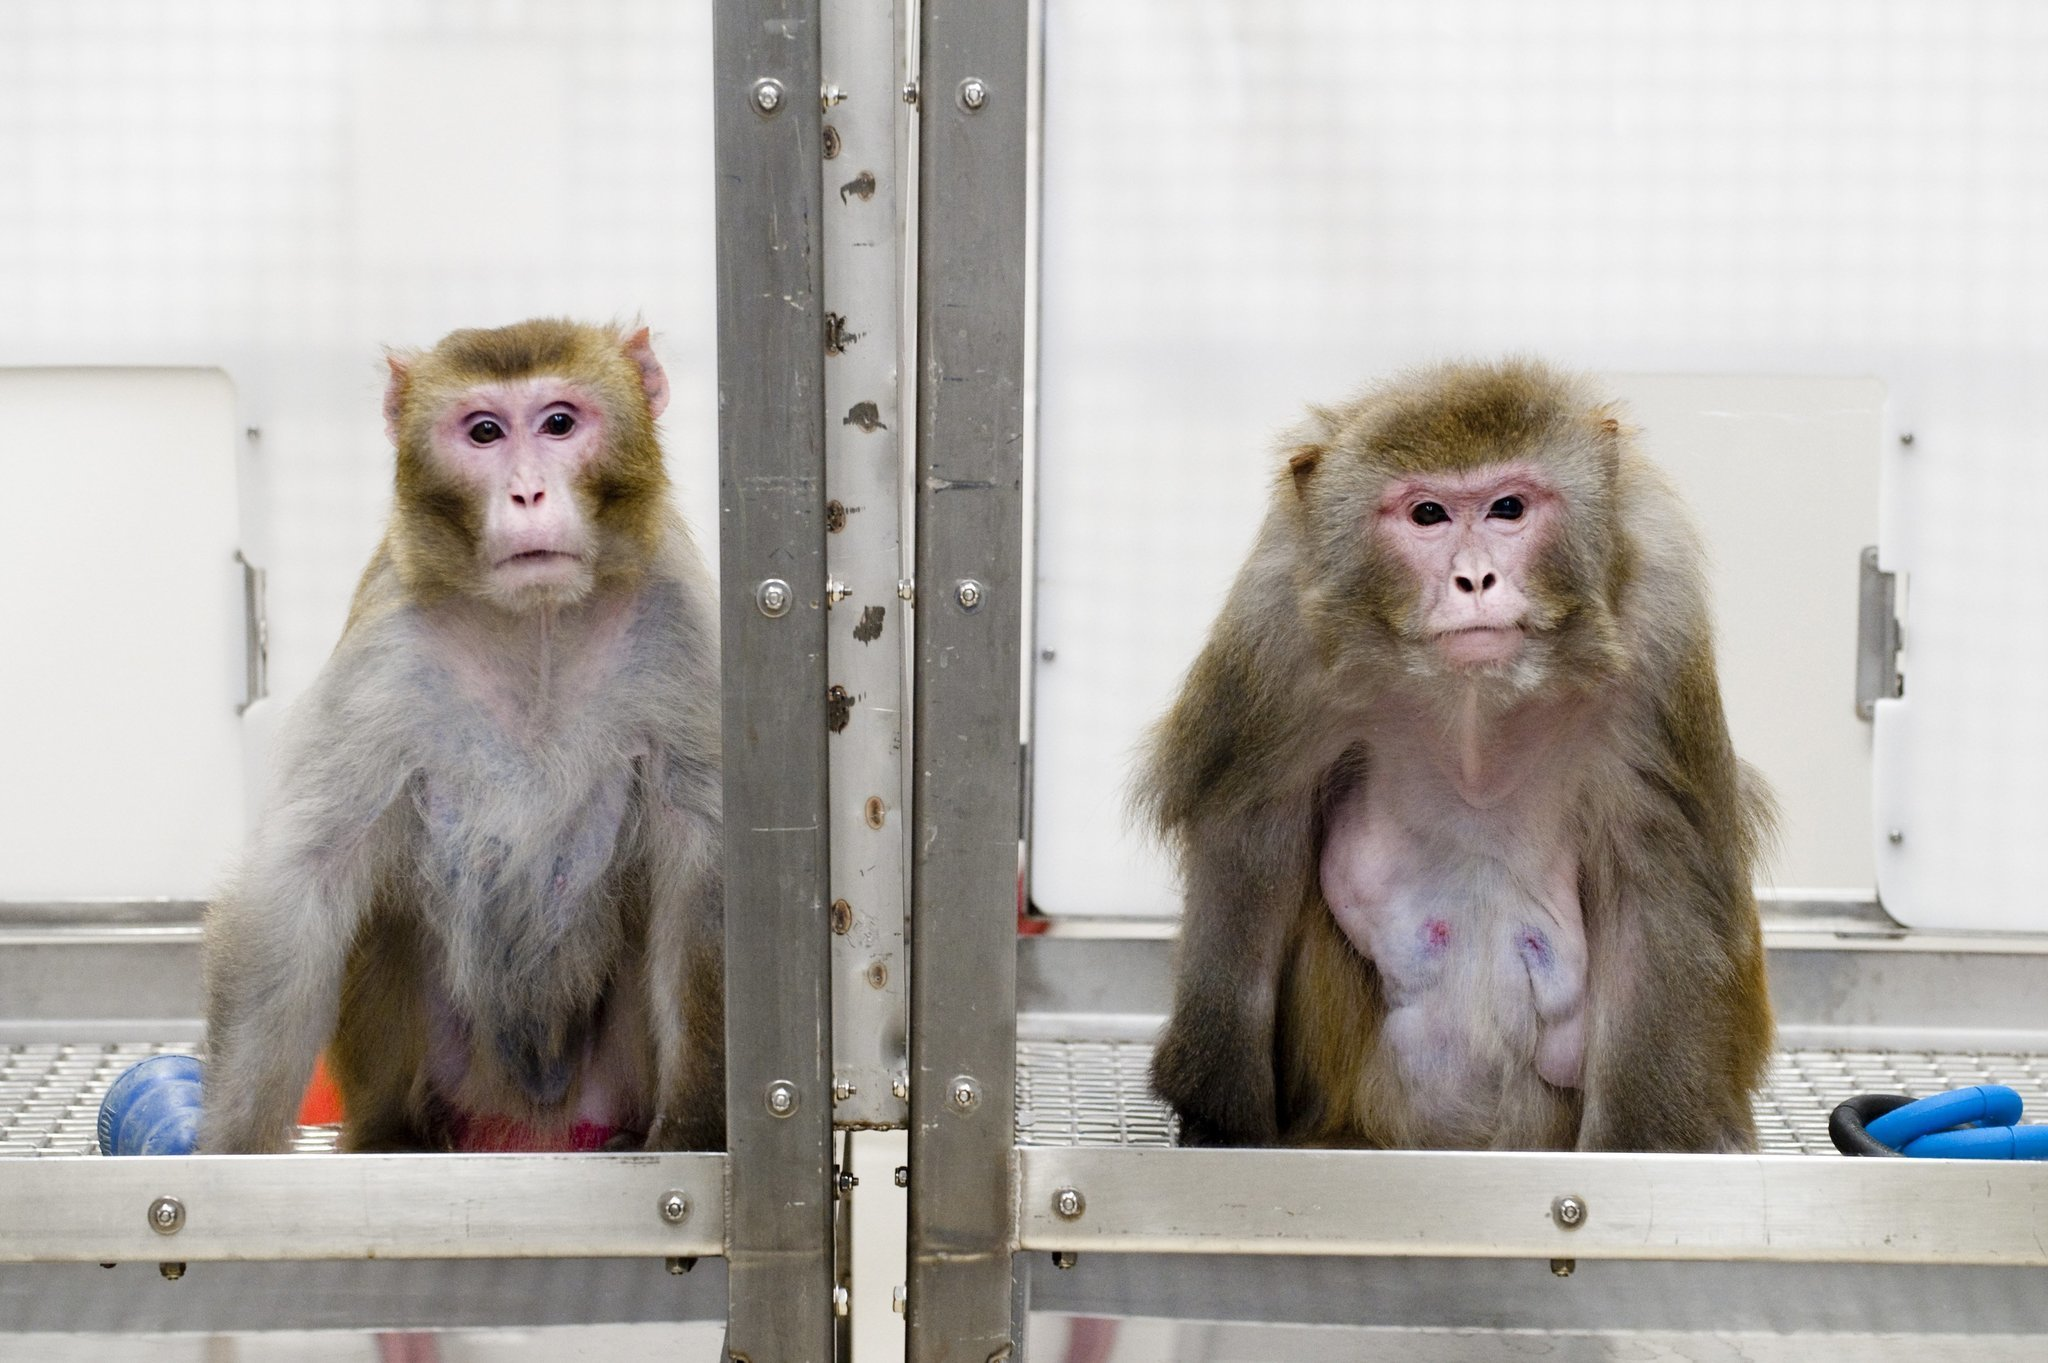 using animals for medical testing is unethical and unnecessary